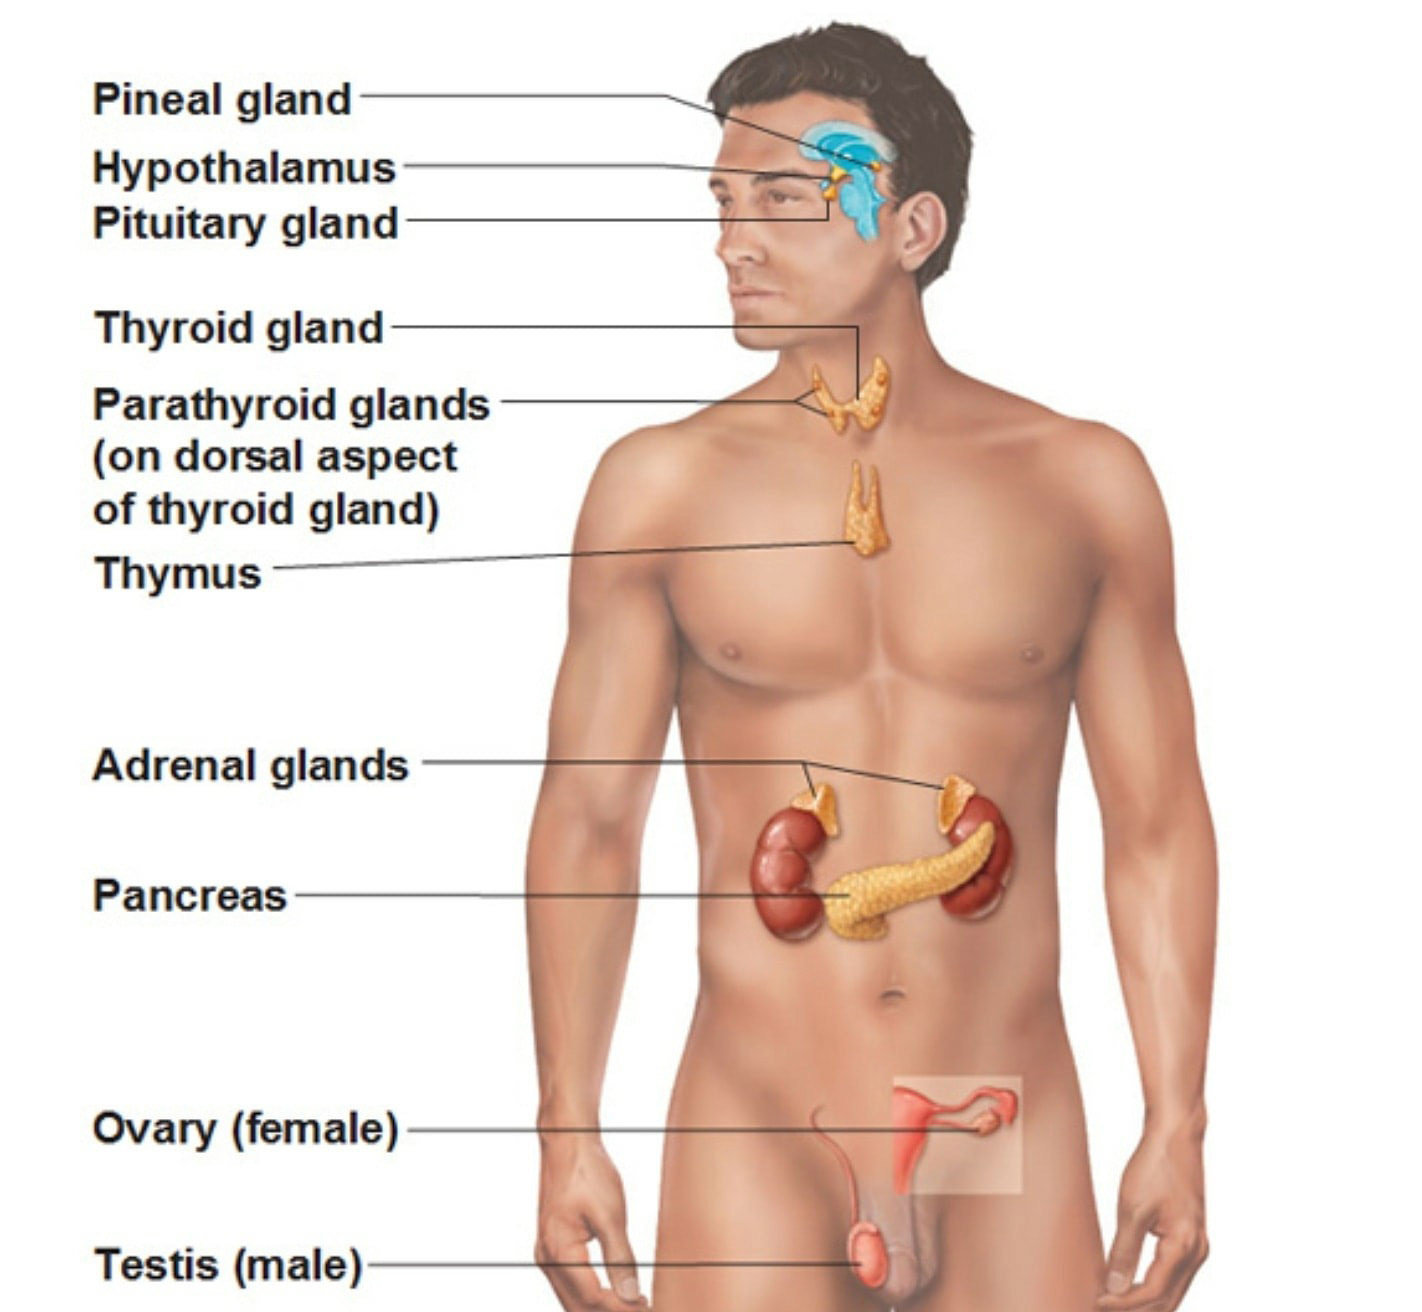 The Major Endocrine Organs